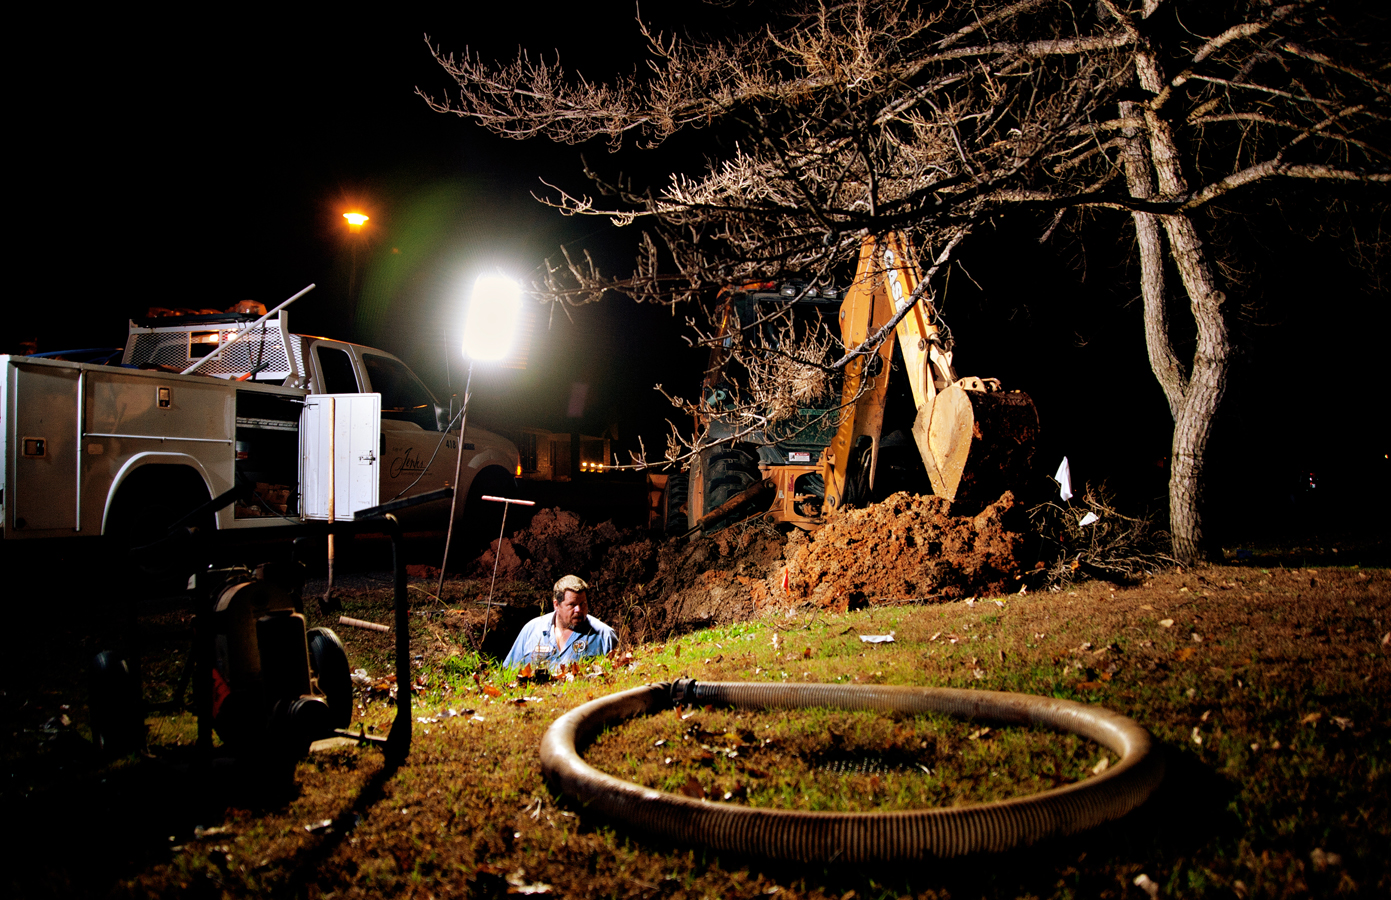 Man working on a water line break standing in the whole he has dug.  Kenneth M. Ruggiano is a Editorial Photographer based in Tulsa, Ok